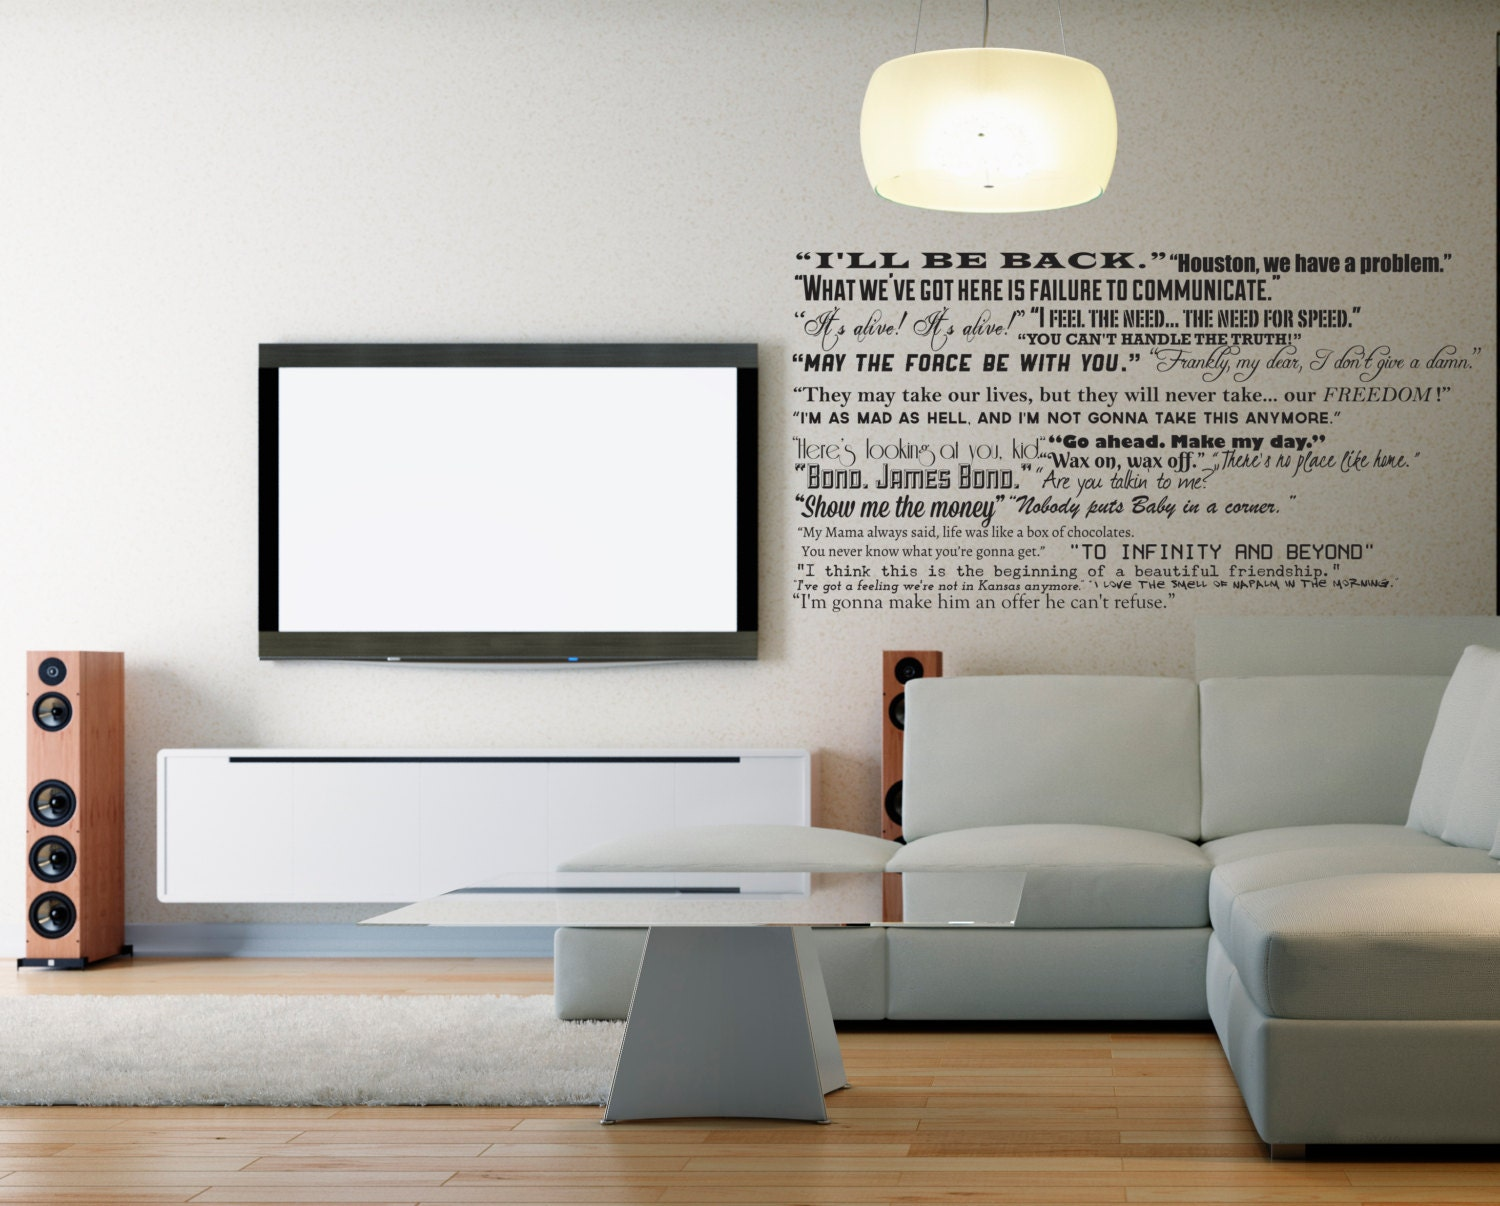 Famous Movie Quotes Wall Quotes Decal Collection Classic - Custom vinyl decals houston